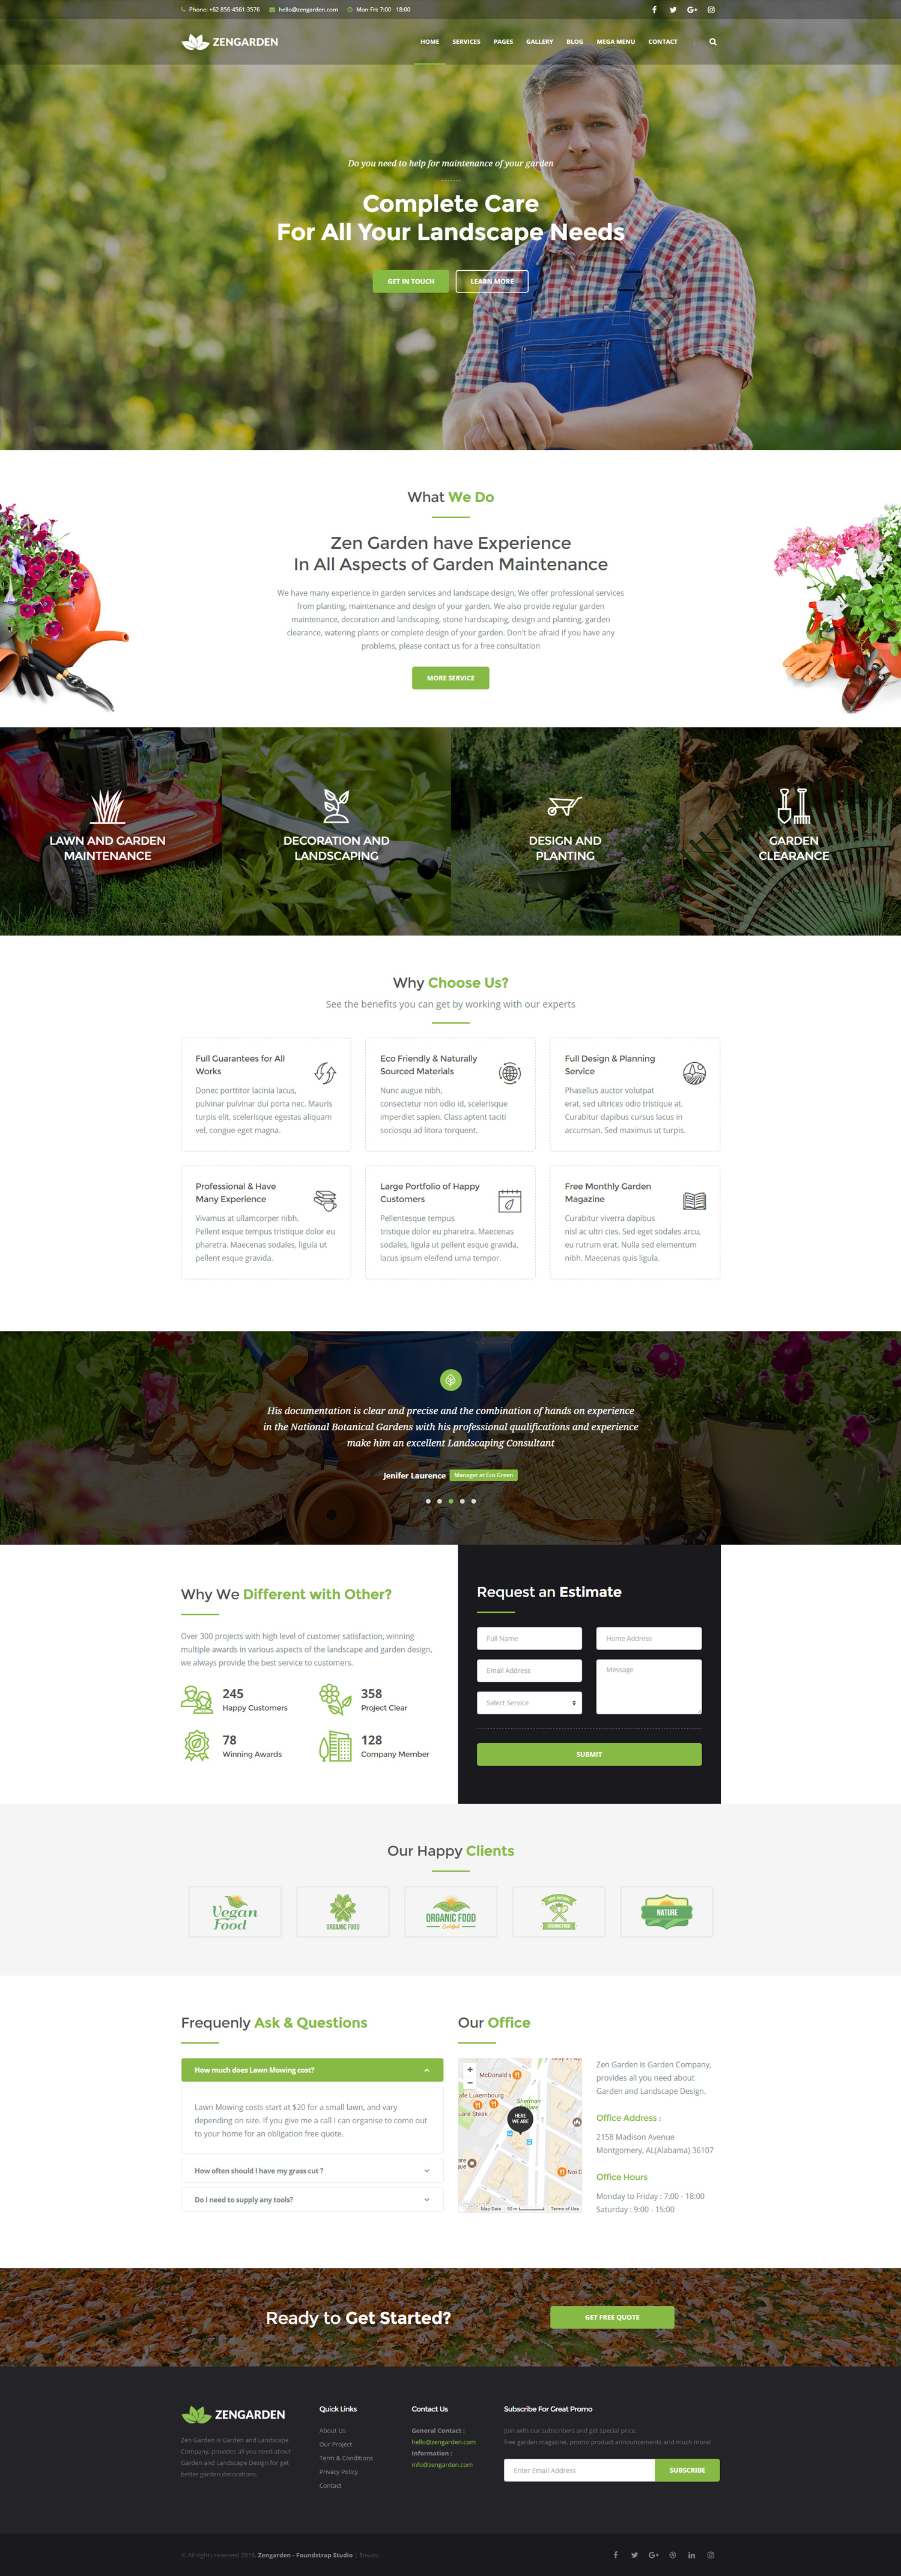 Zen Garden - Garden and Landscape HTML Template by foundstrap ... on landscape design, loft design, zen gardens in japan, zen gardens landscaping, zen space, zen small backyard ideas, zen gardening, mail kiosk design, pergola design, zen art, okinawa design, pool design, zen symbols, zen flowers, zen doodle designs instruction, zen paint colors, patio design,